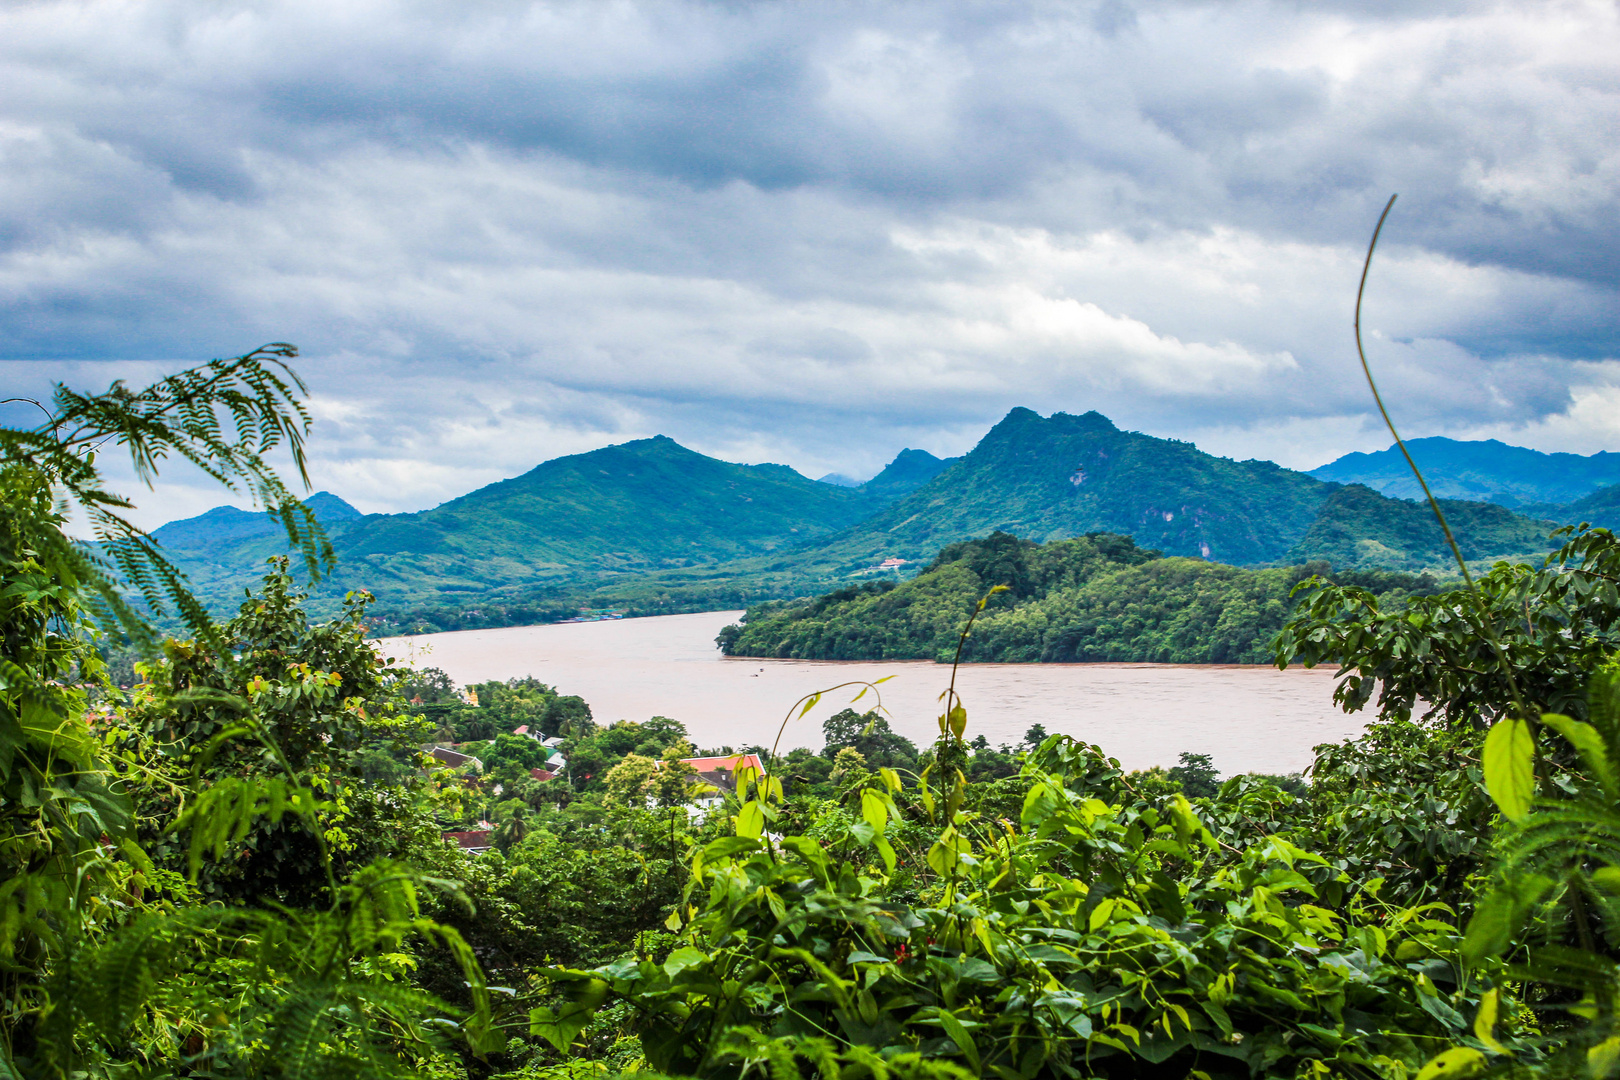 View from Mount. Phousi, Laos